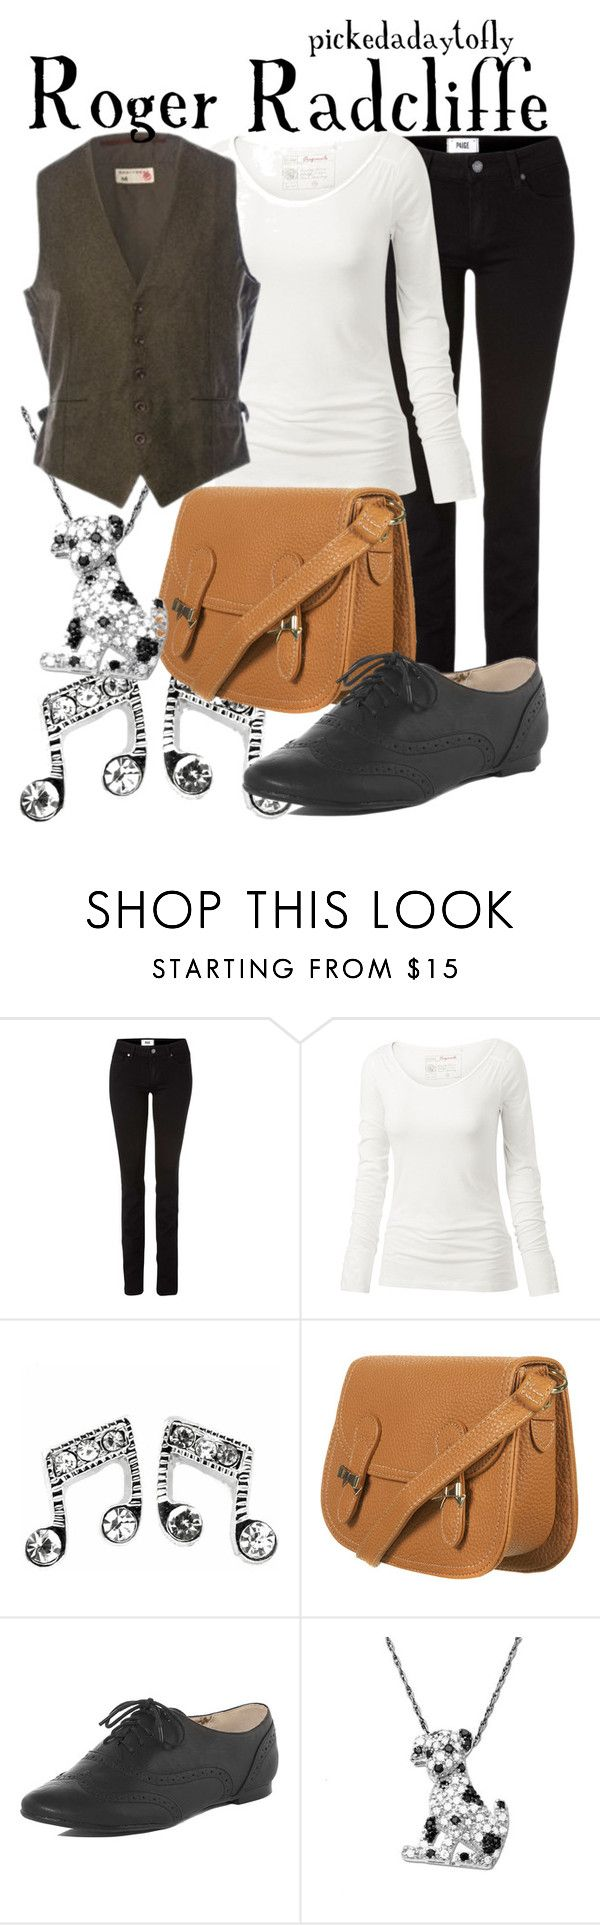 """""""Roger Radcliffe"""" by pickedadaytofly ❤ liked on Polyvore featuring Paige Denim, Fat Face, Dorothy Perkins, Incotex, women's clothing, women, female, woman, misses and juniors"""